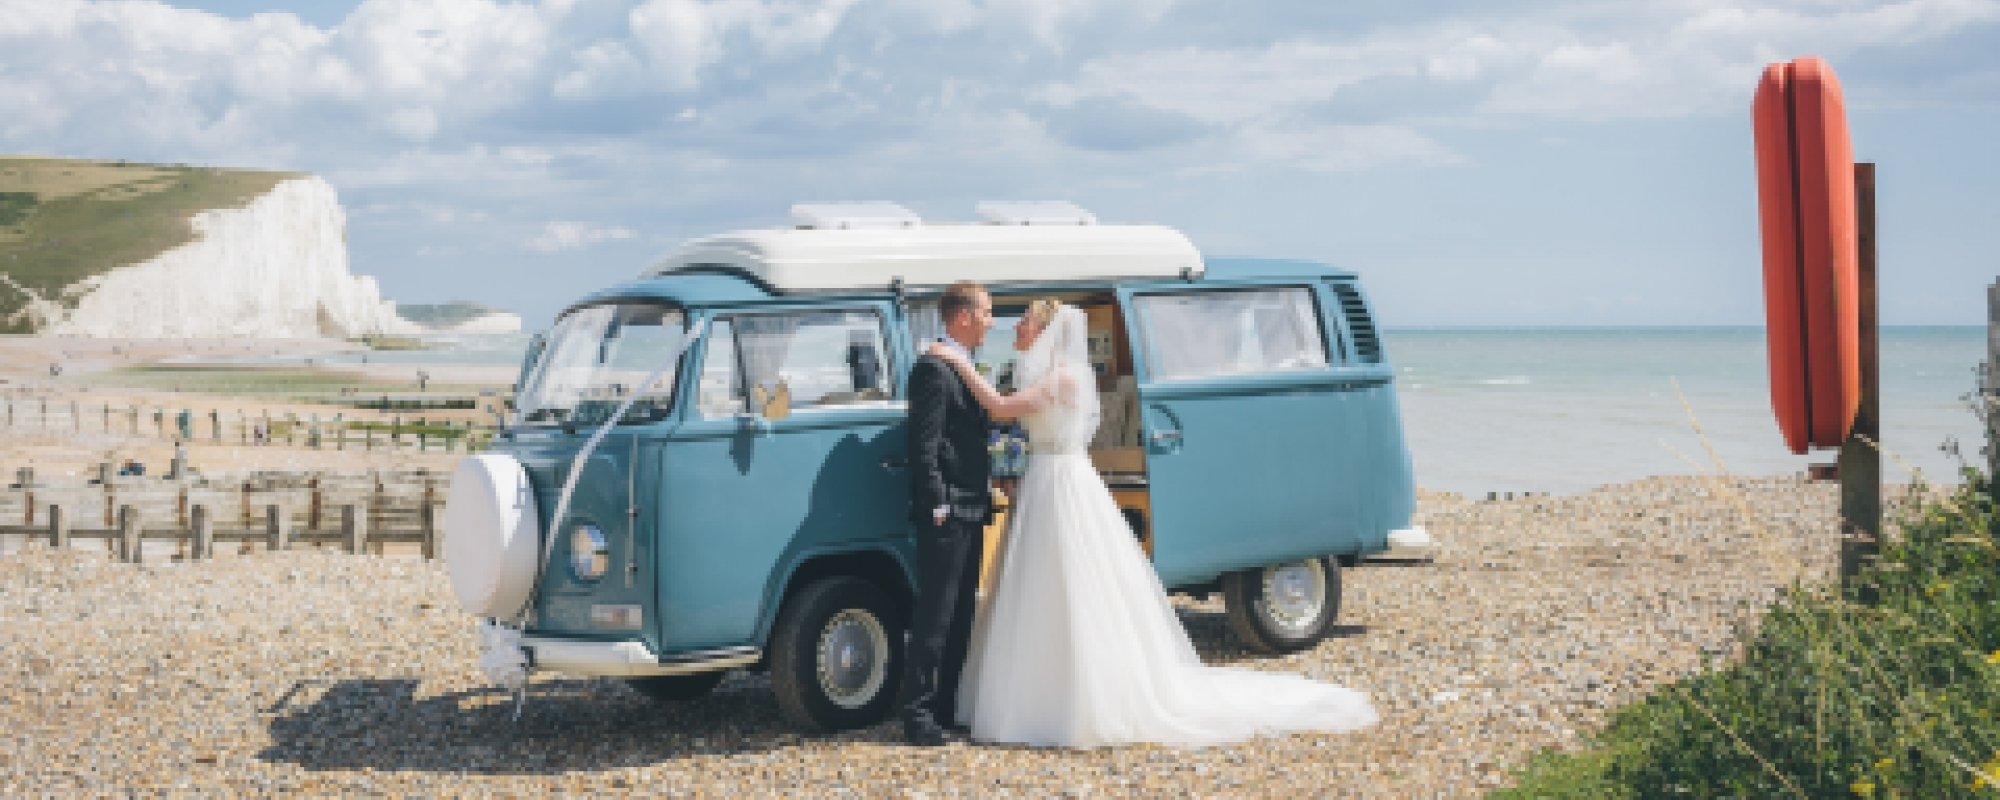 VW Campervan Wedding Hire